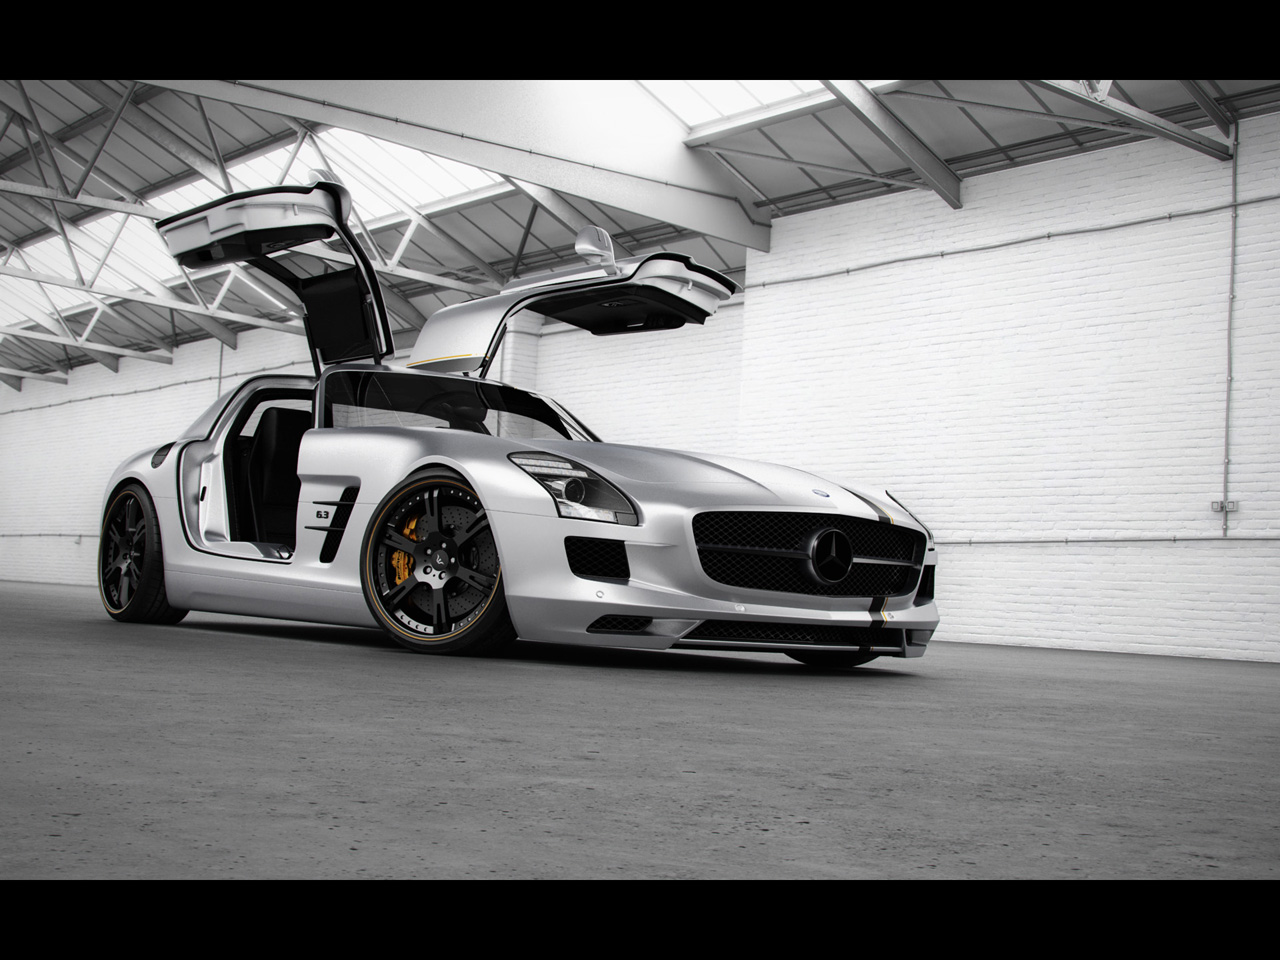 2012 wheelsandmore mercedes benz sls amg silver wing front and side mercedes tuning mag. Black Bedroom Furniture Sets. Home Design Ideas